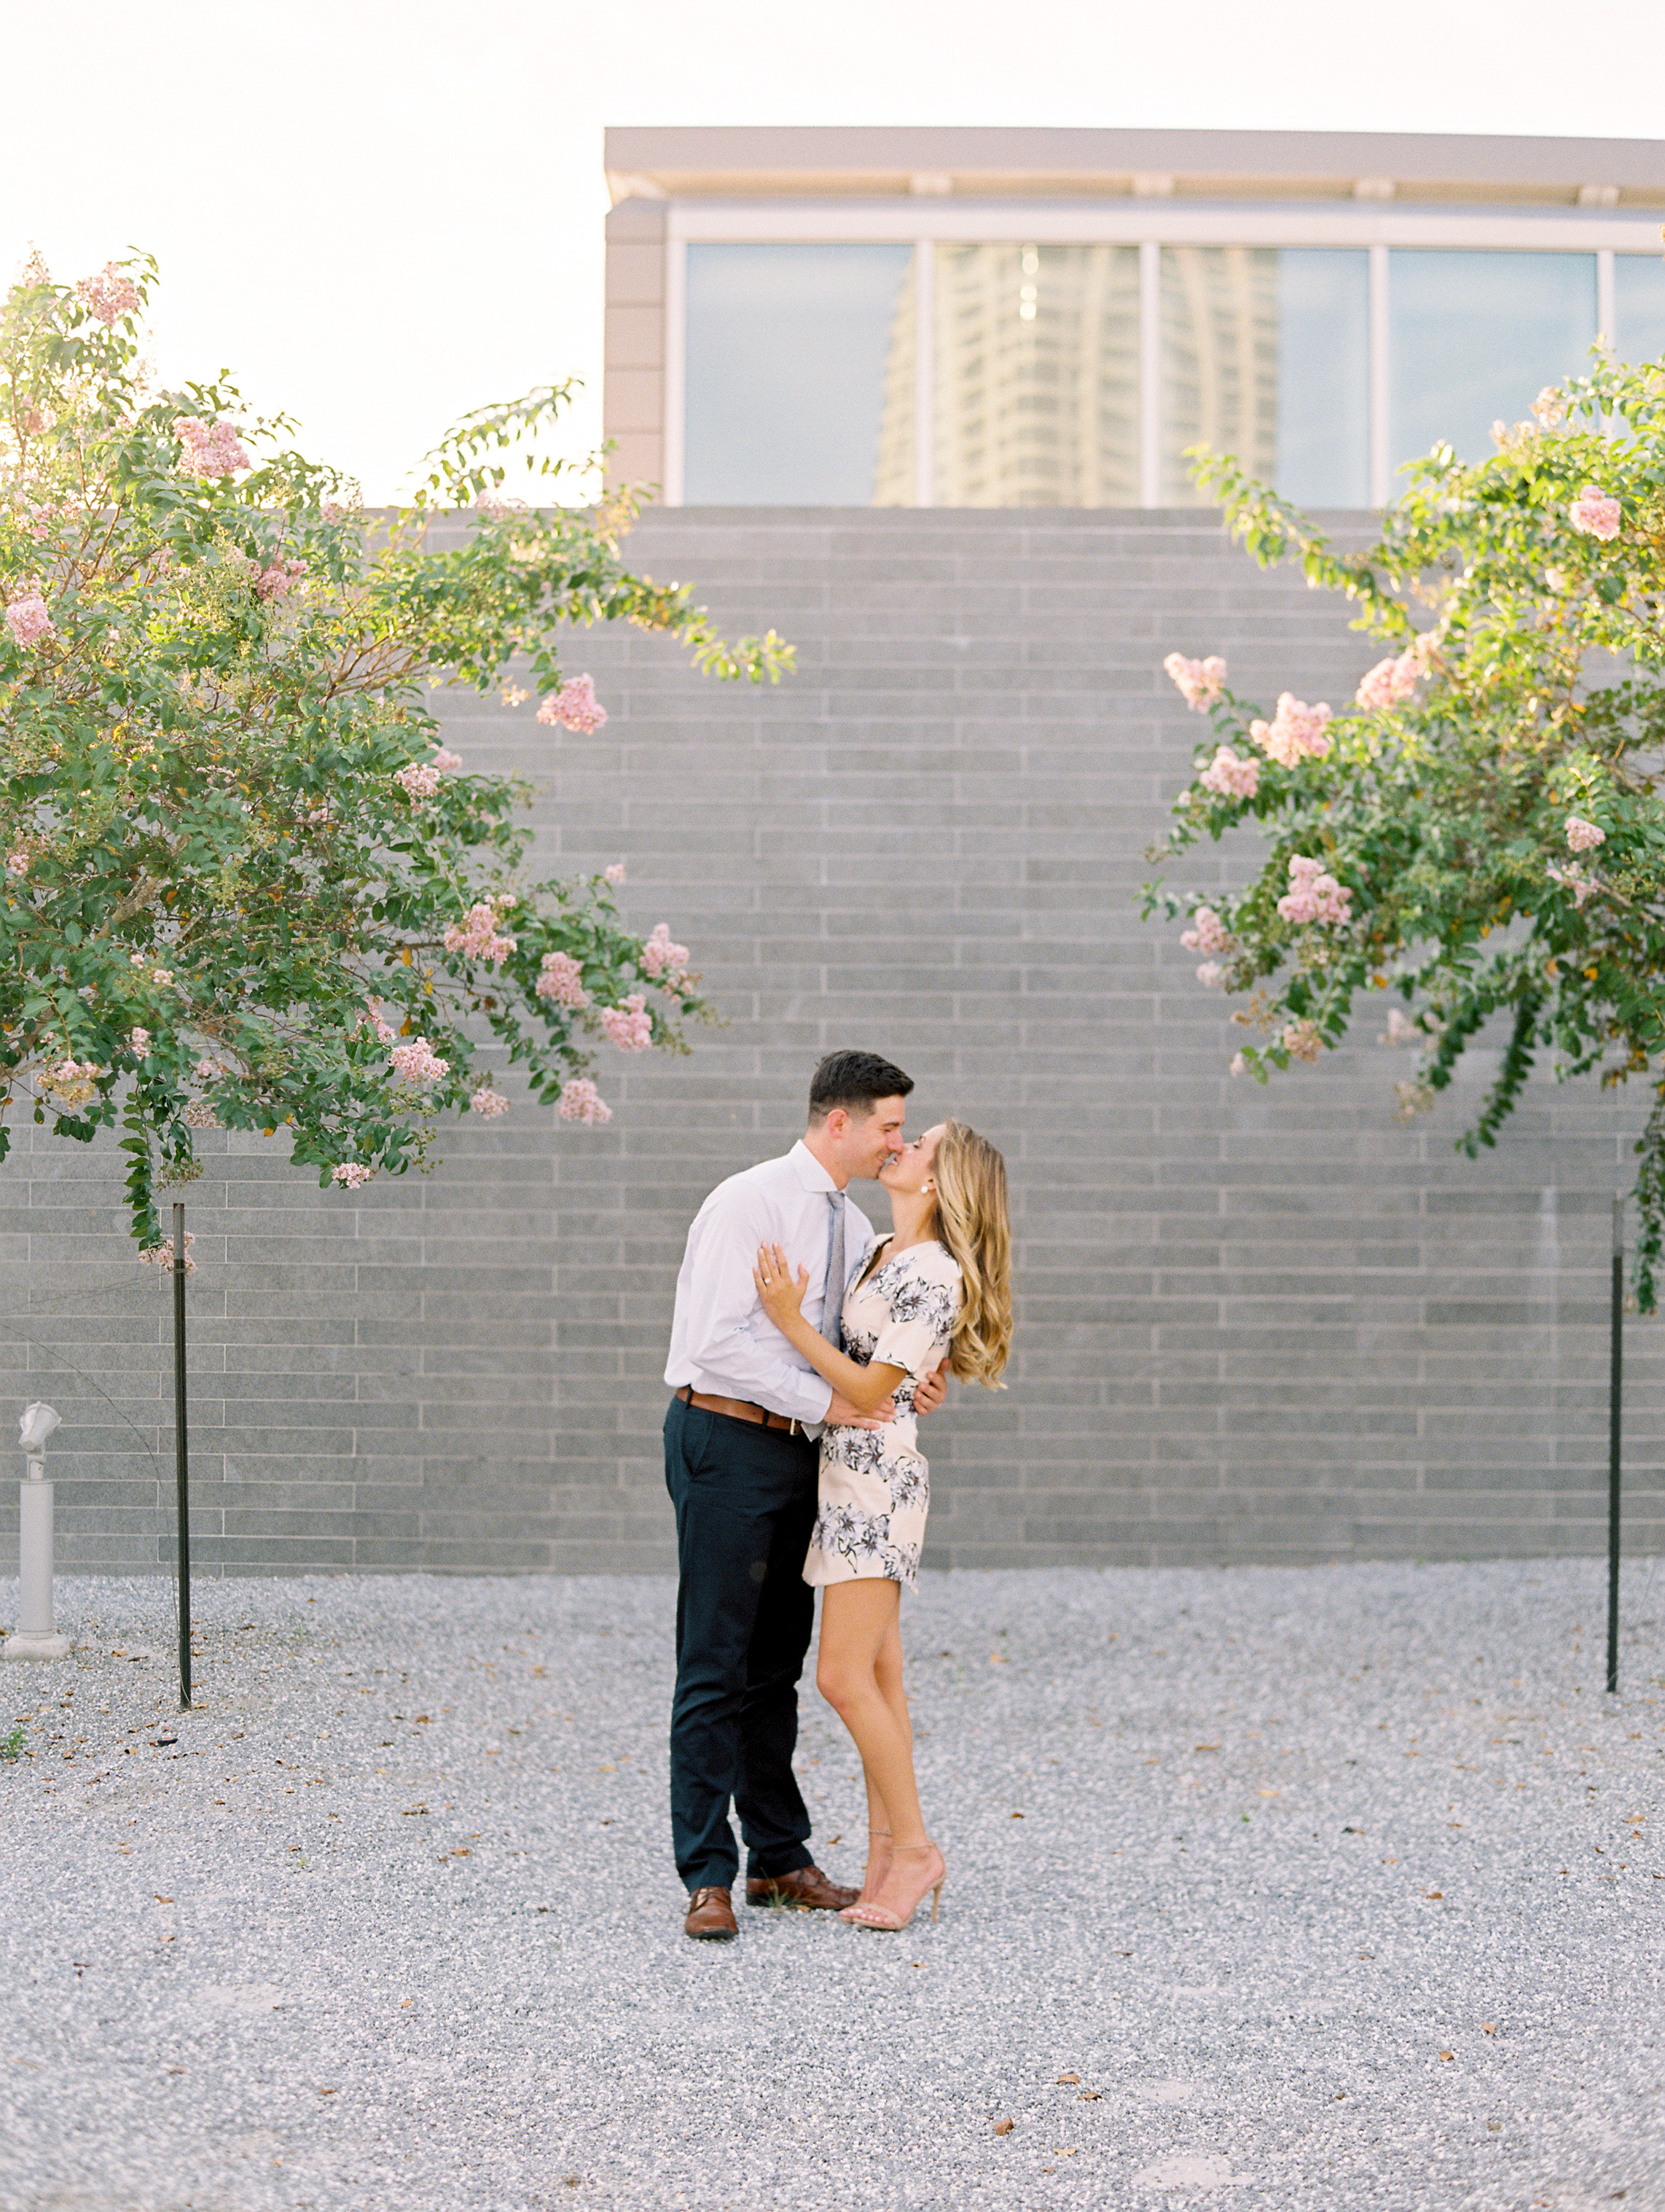 Dana-Fernandez-Photography-Houston-Engagement-Wedding-Film-Photographer-13.jpg